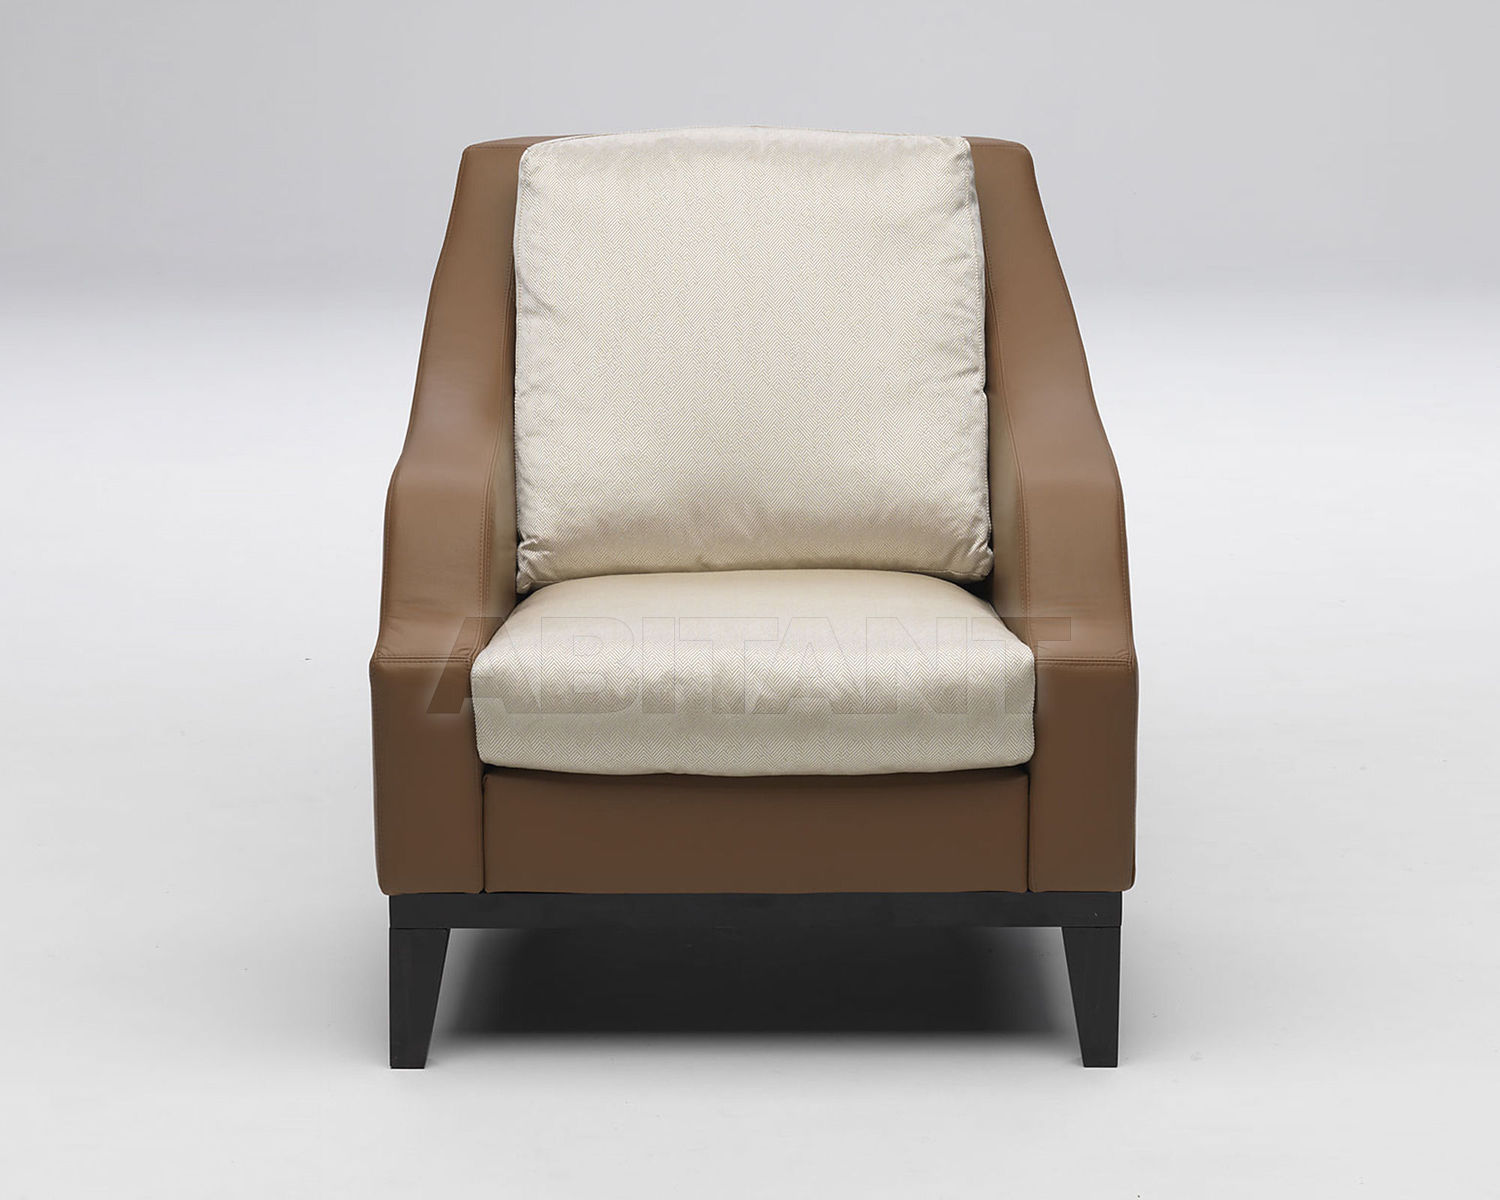 Купить Кресло Paolo Castelli  Inspiration FOR HALL Chair